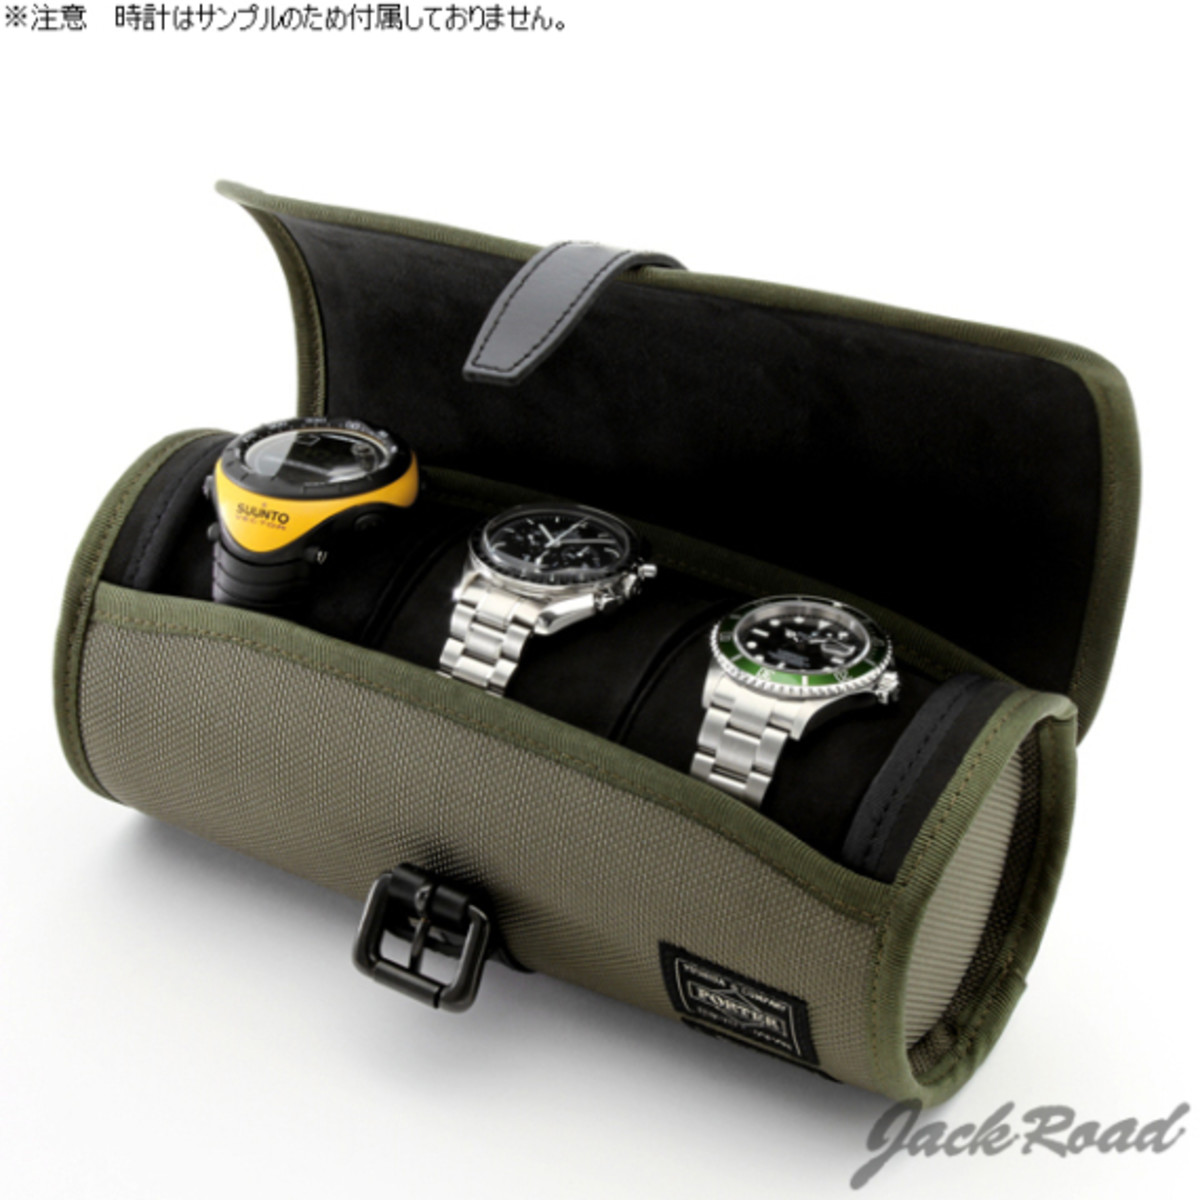 jack-road-porter-watch-carrying-case-08